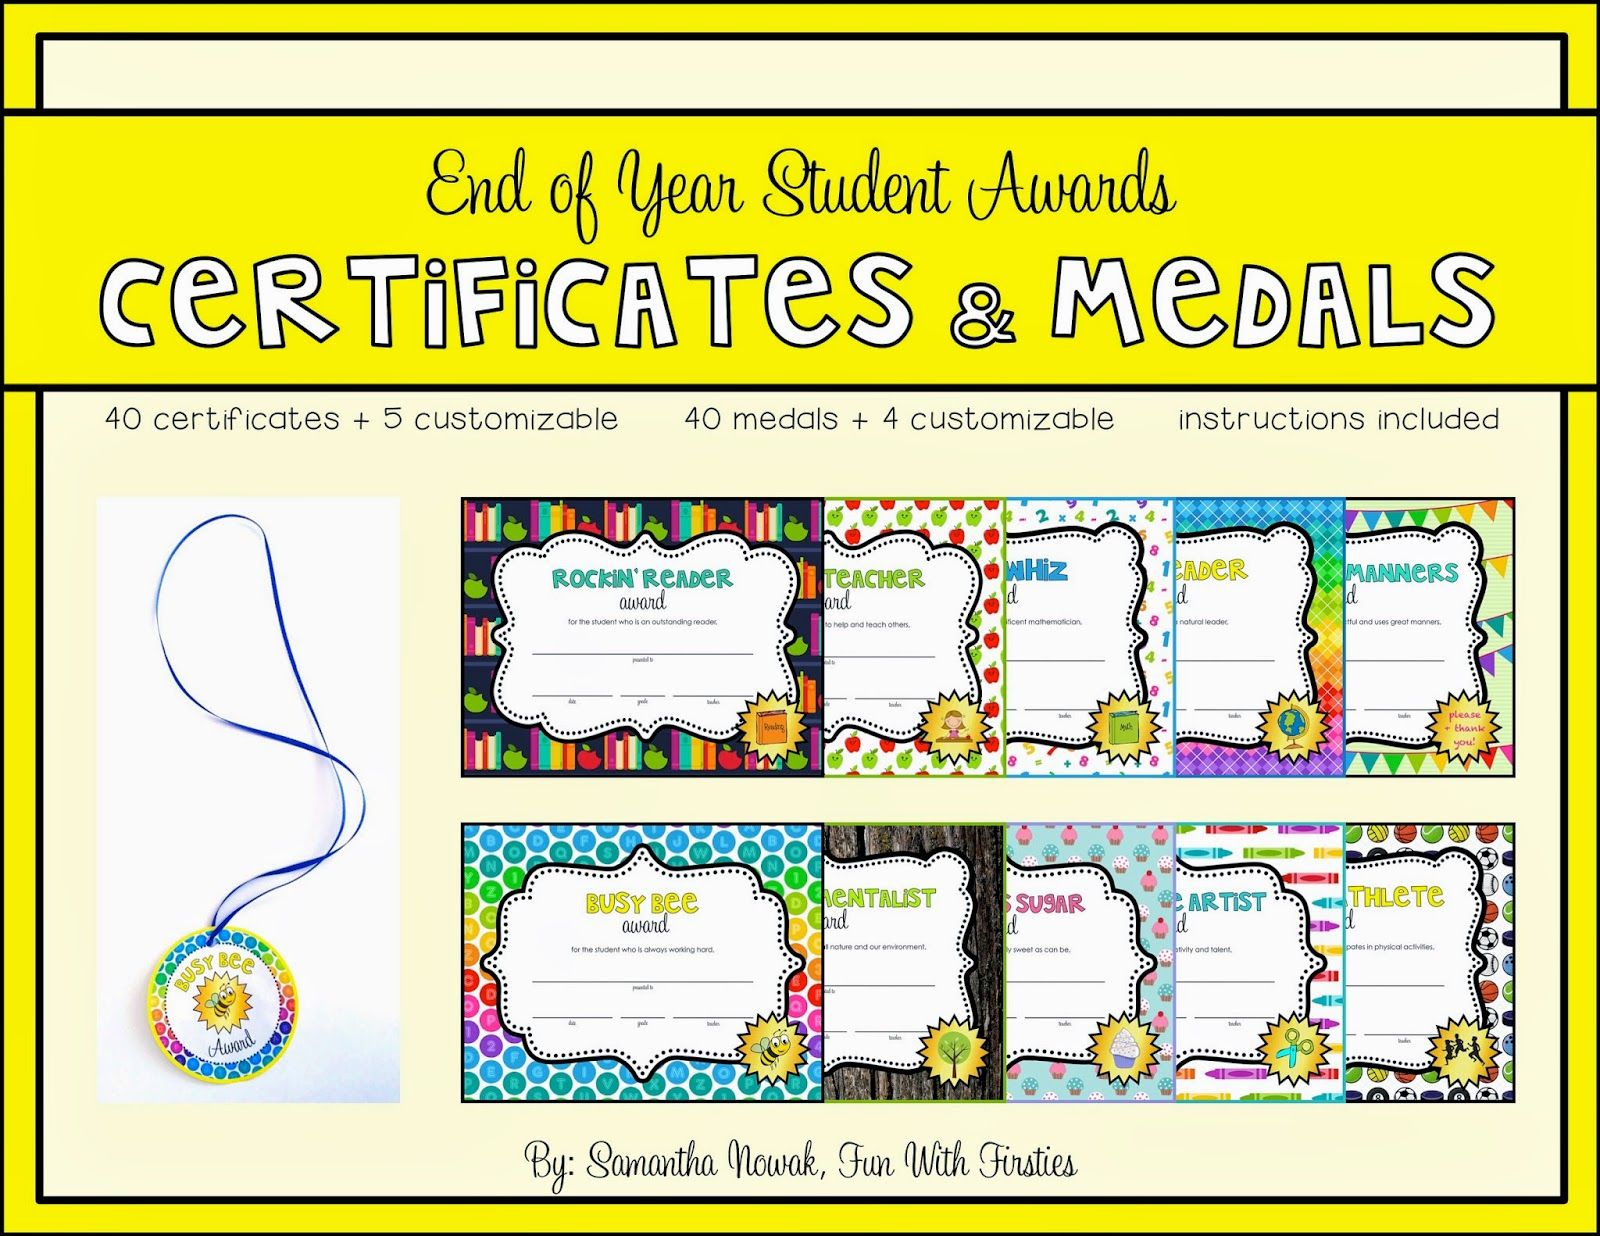 Fun With Firsties Our Probability Unit Worksheets Activities Lessons And Assessment Student Awards Student Encouragement End Of Year [ 1236 x 1600 Pixel ]